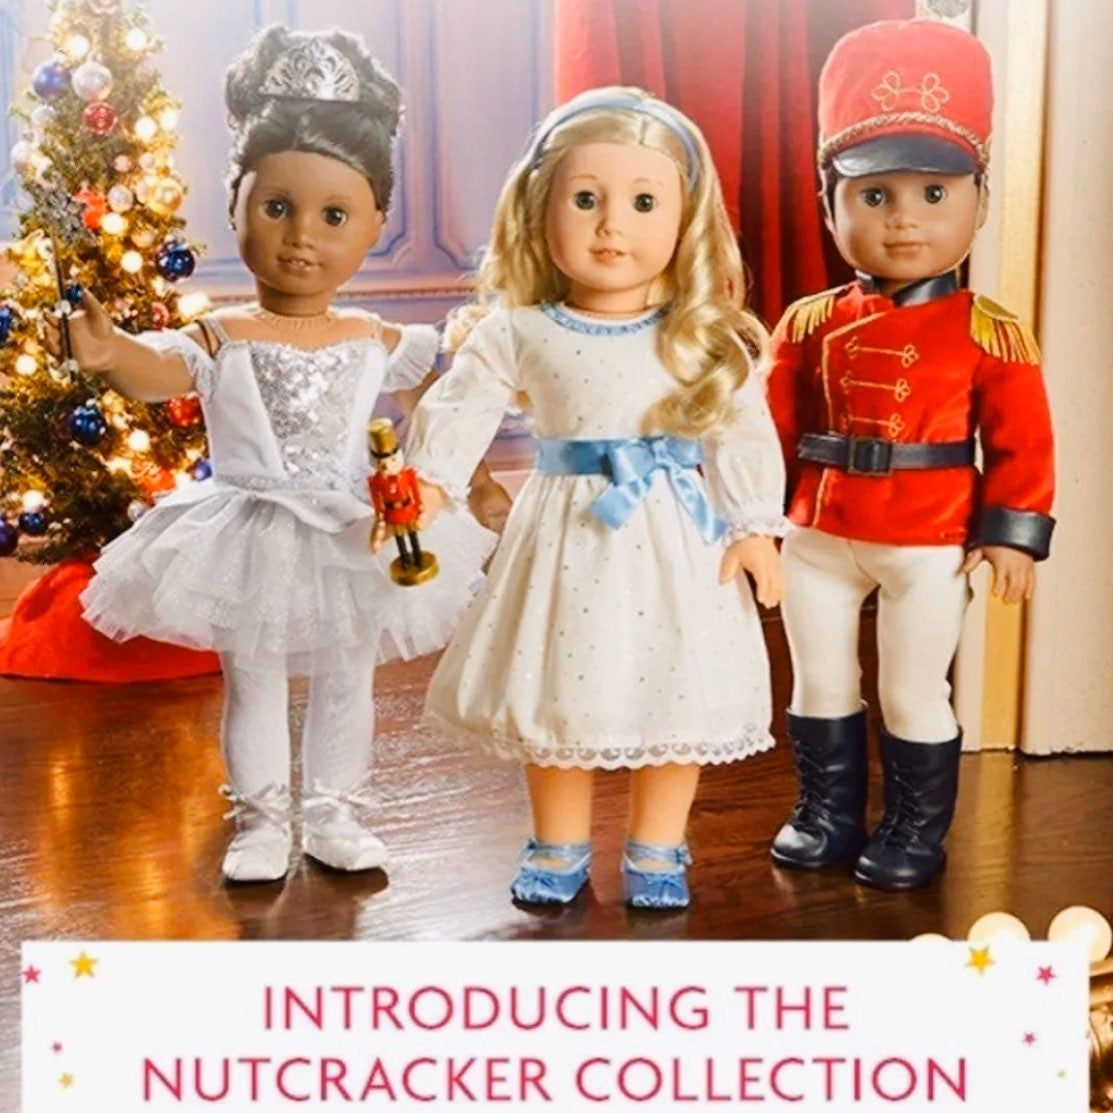 AMERICAN GIRL SNOW SOFT /& SPARKLY OUTFIT SNOW FANCY COLLECTION HOLIDAY PARTY NIB